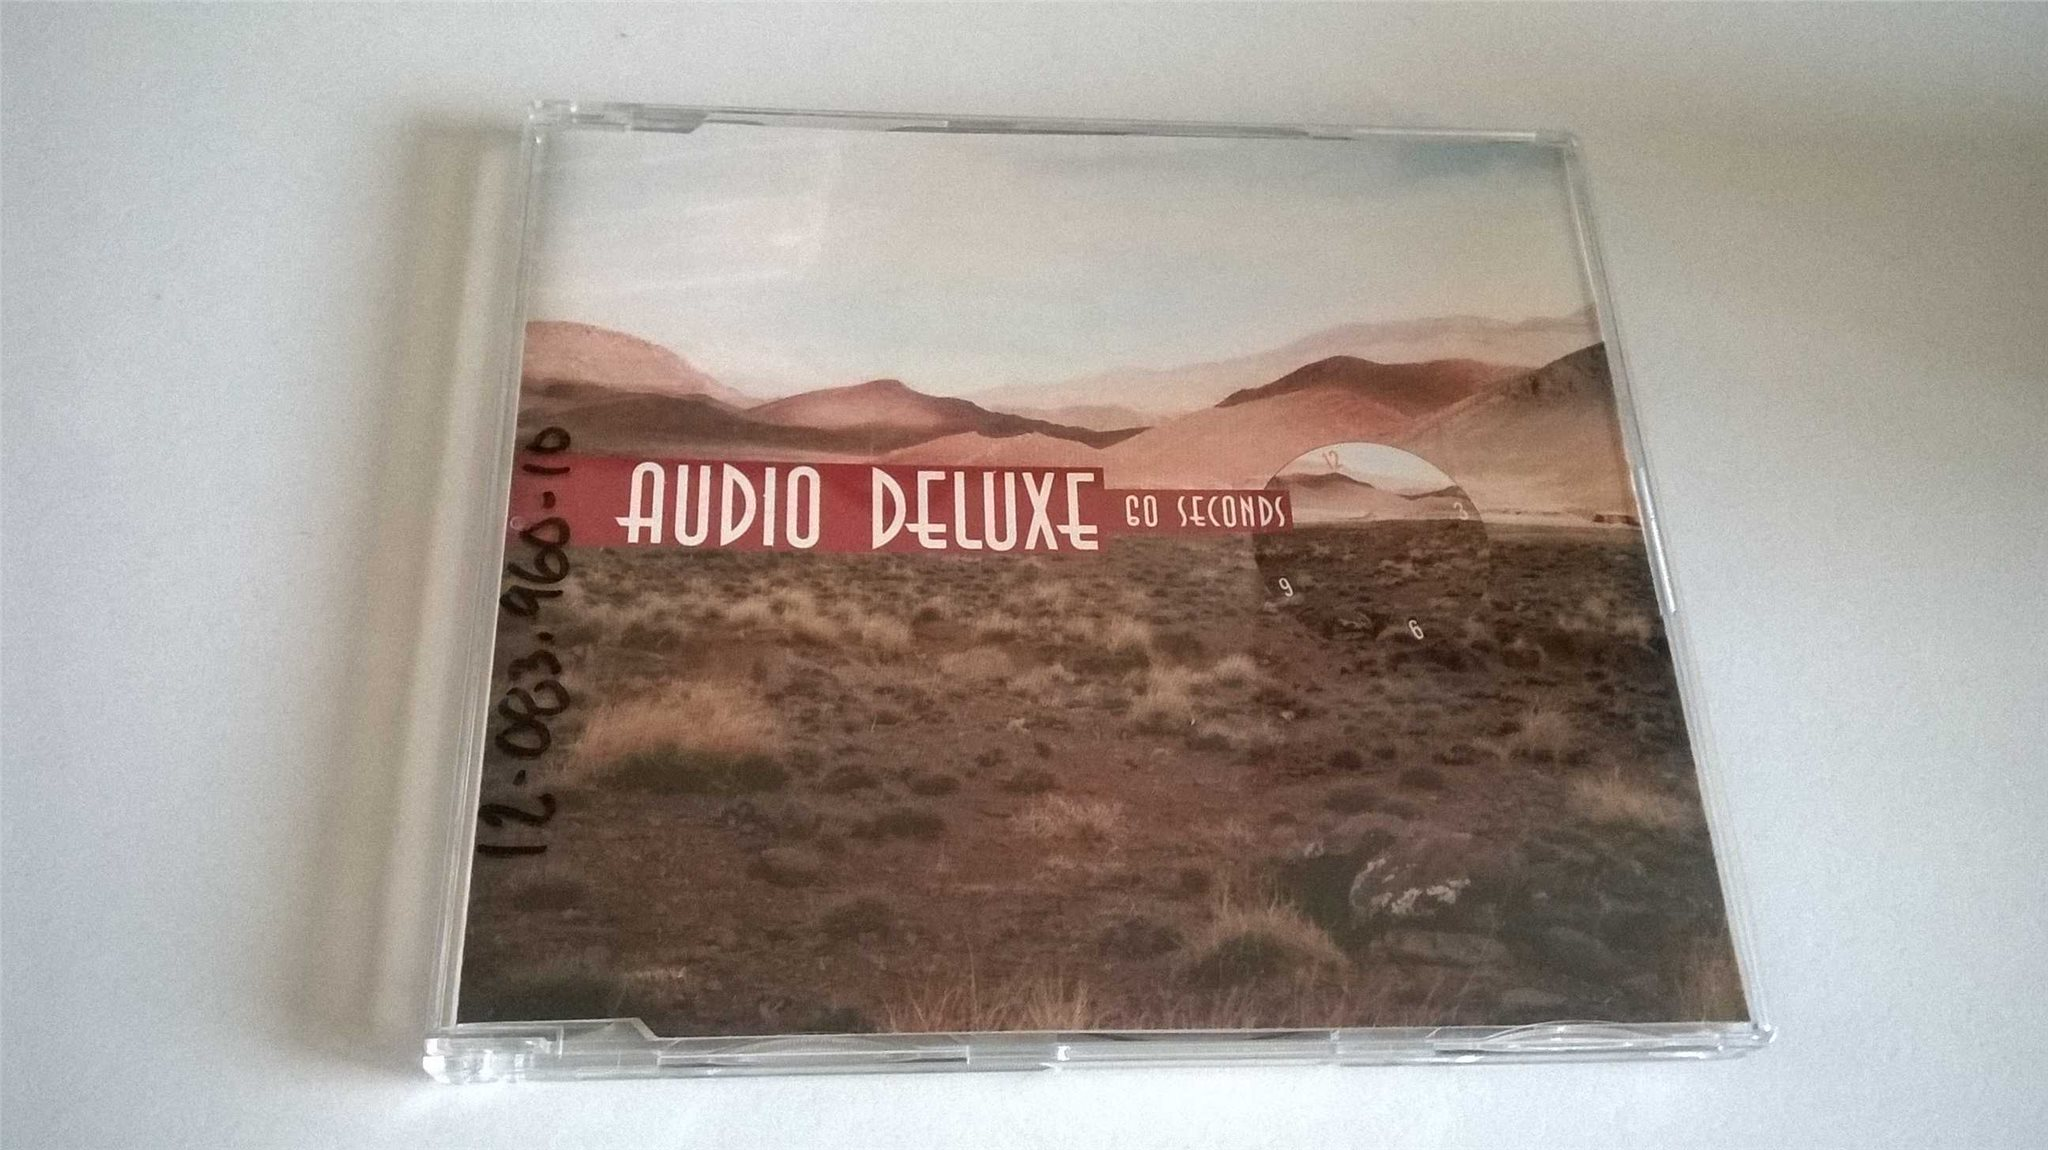 Audio Deluxe Go Seconds, CD